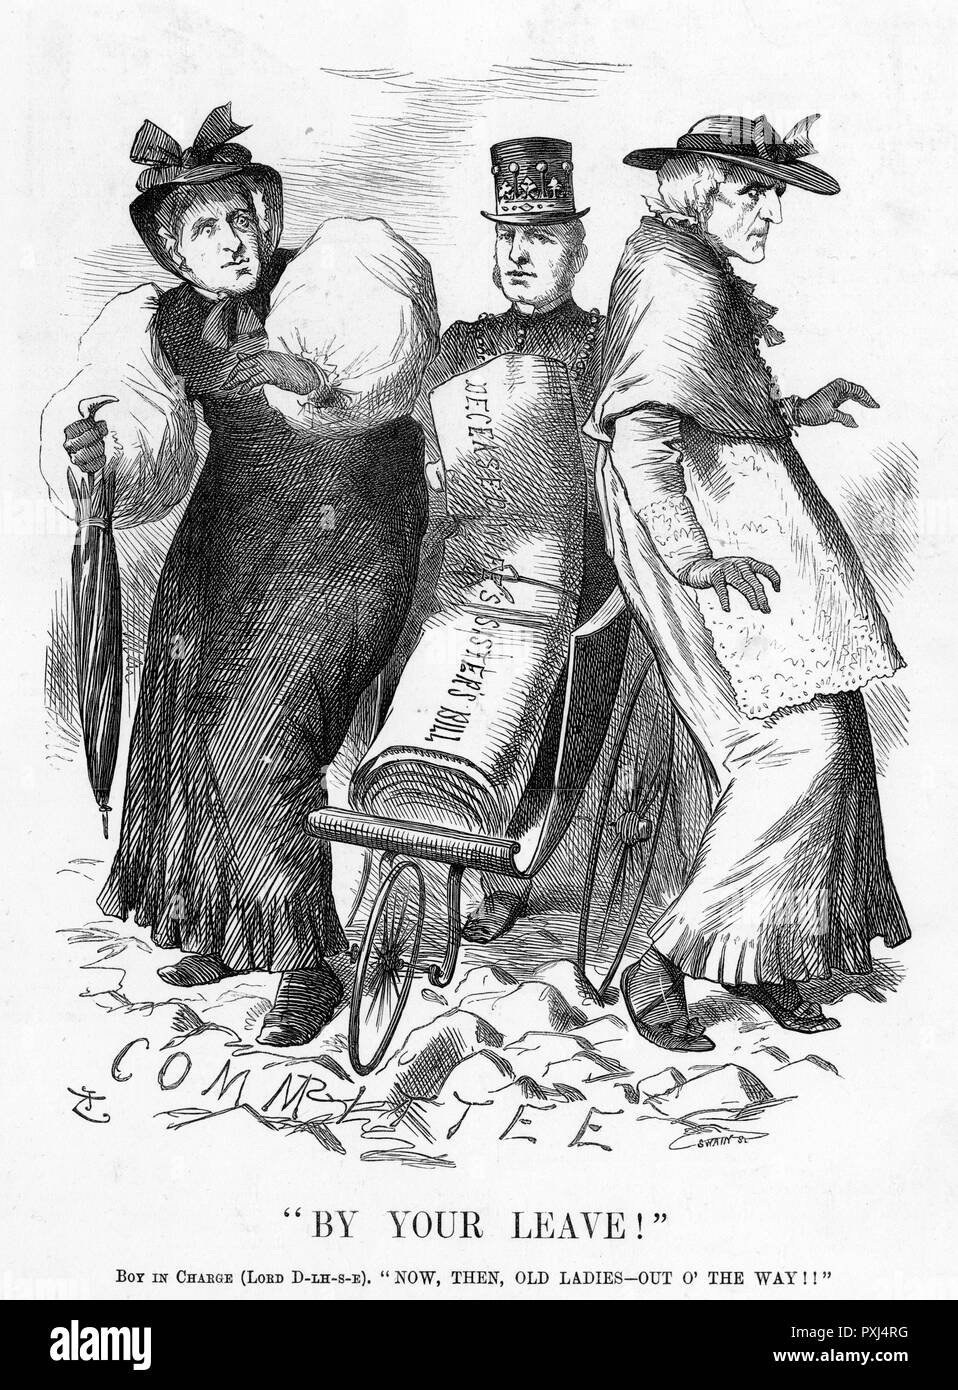 The DECEASED WIFE'S SISTER'S BILL is pushed through Parliament by Lord Dalhousie, allowing a man to marry his dead wife's sister if he chooses and she agrees     Date: 1883 - Stock Image